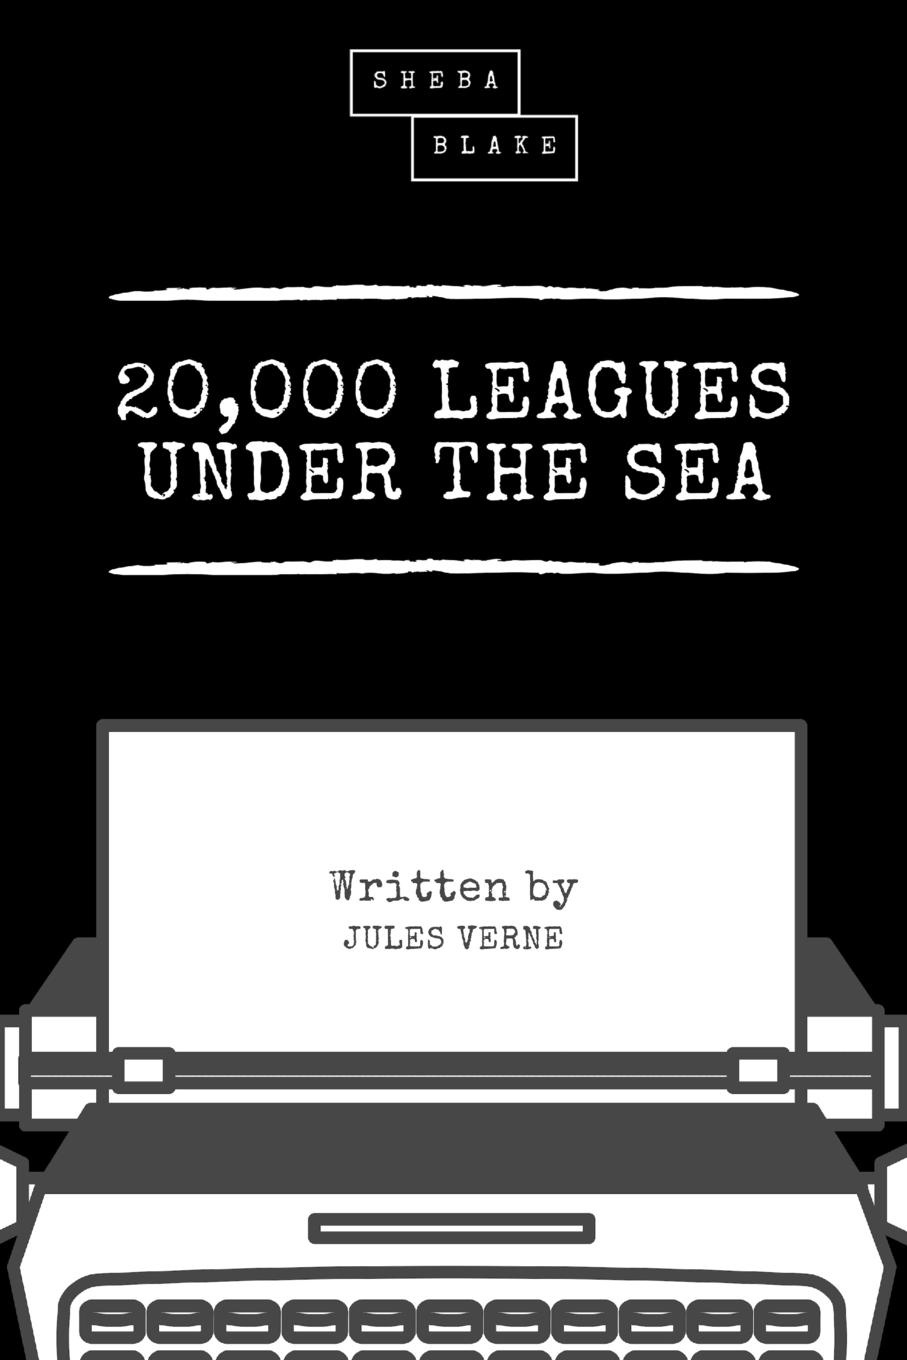 Jules Verne 20,000 Leagues Under the Sea verne j 20000 leagues under the sea theacher s book